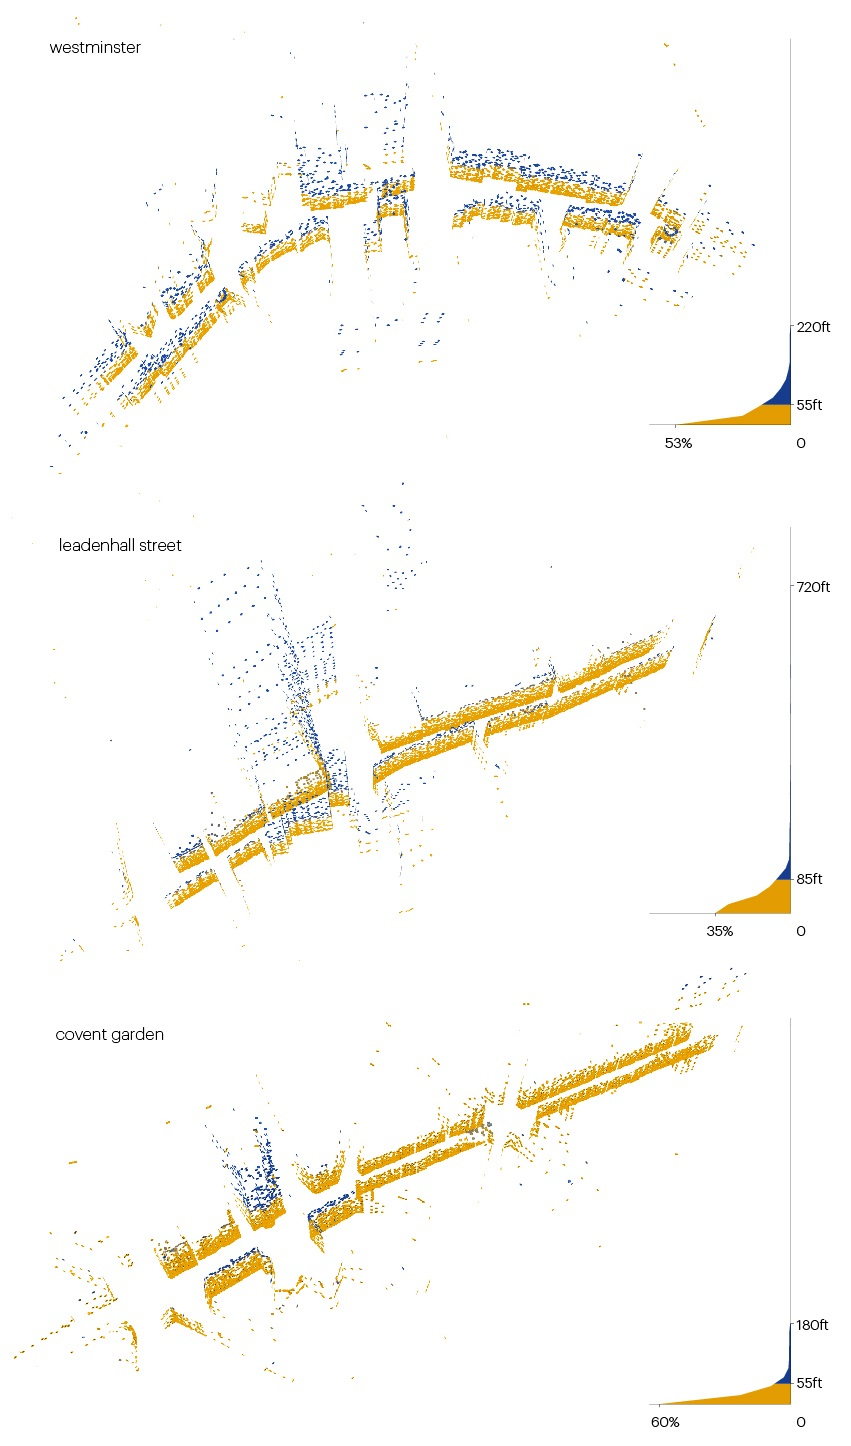 Fig 5 - London streets analysis